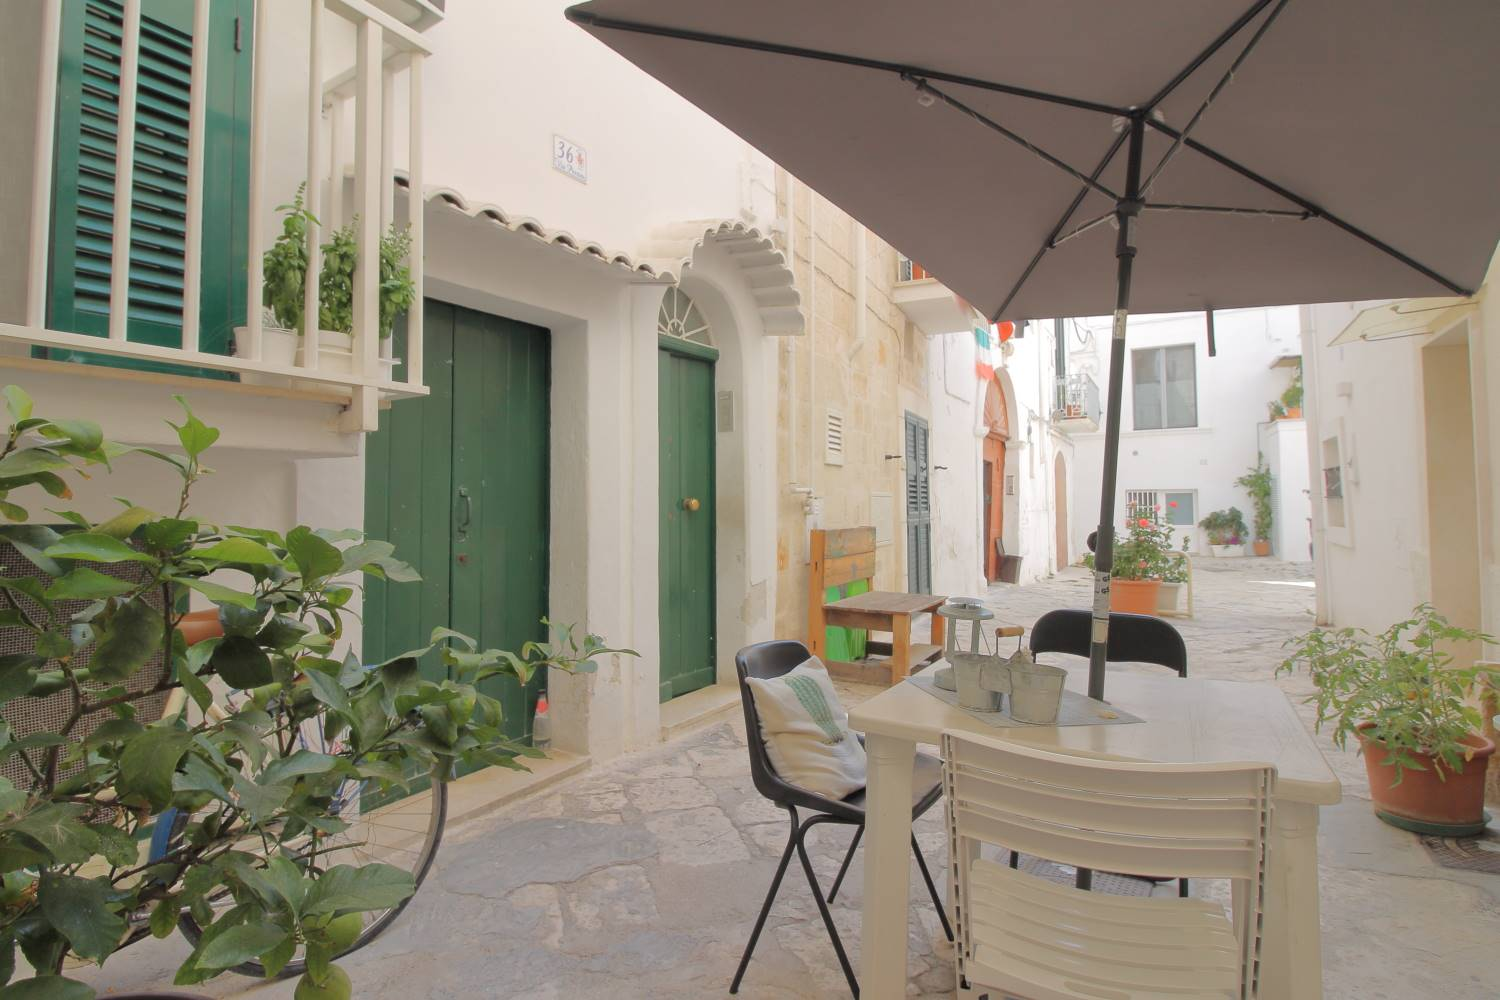 MONOPOLI, Independent Apartment for sale, Good condition, Heating Non-existent, Energetic class: G, Epi: 165 kwh/m2 year, placed at 1° on 1, composed by: 3 Rooms, Little kitchen, , 2 Bedrooms, 1